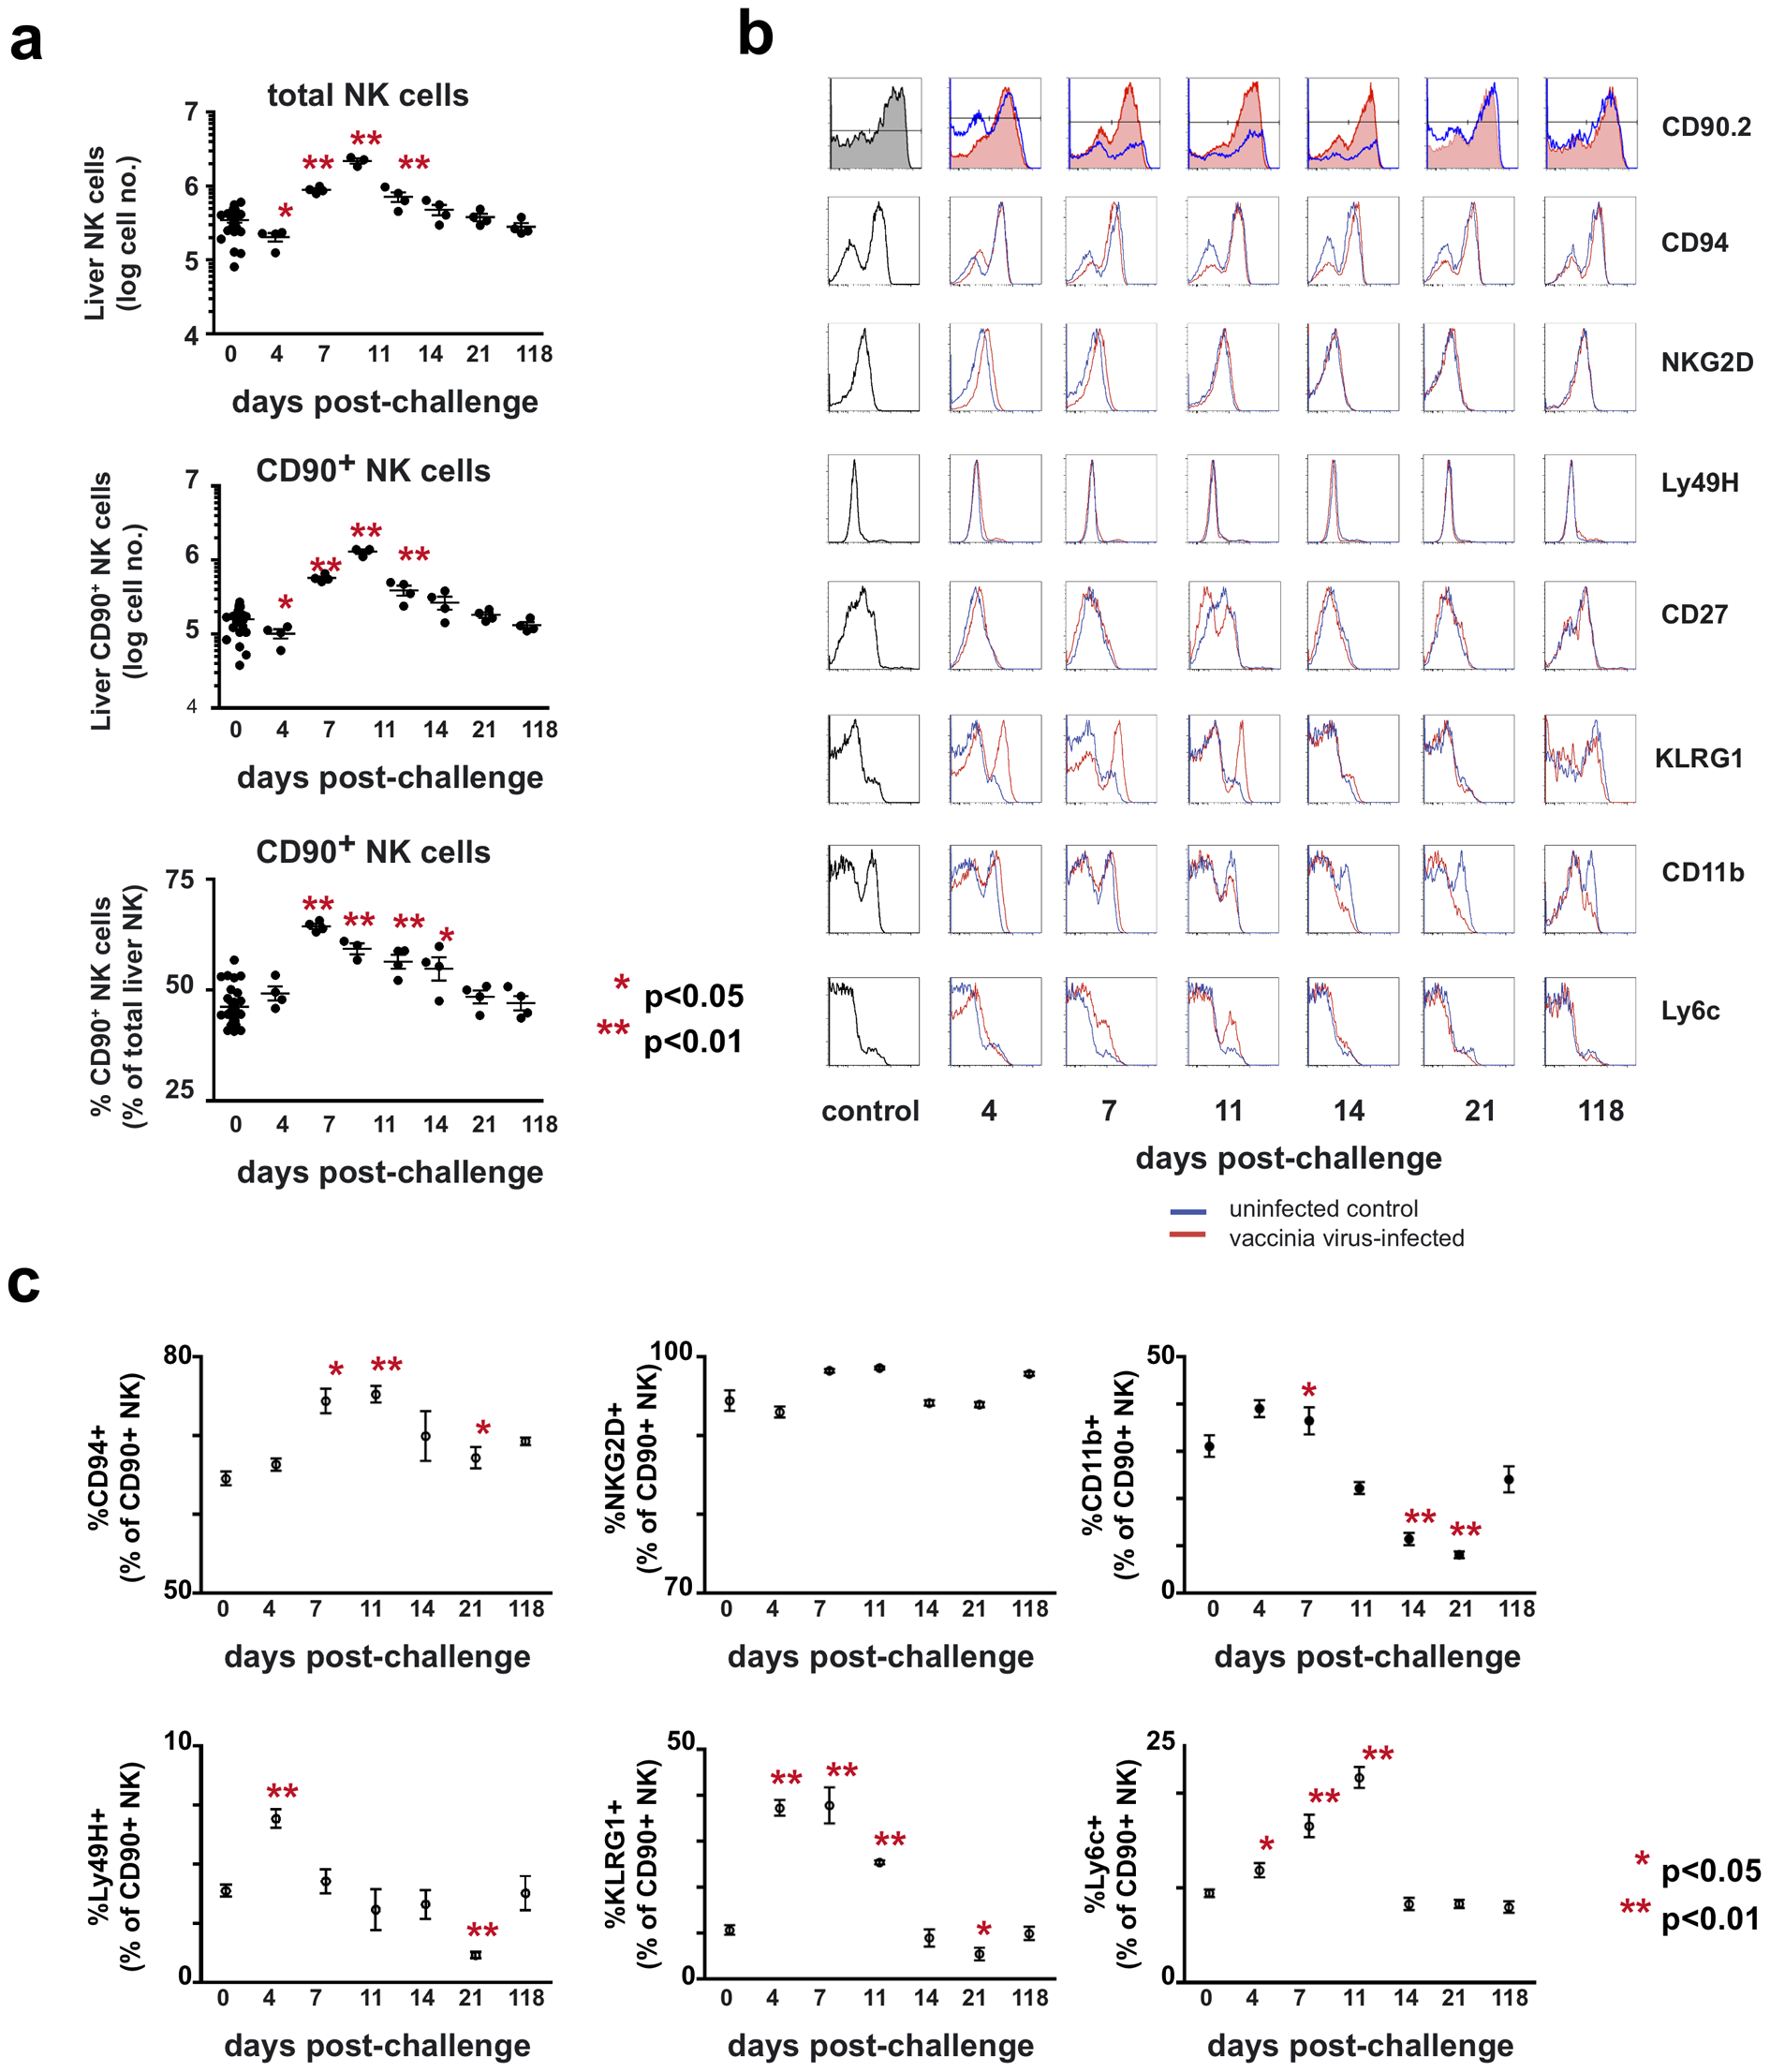 Kinetic and phenotypic analysis of liver NK cell responses following primary vaccinia virus infection reveals the preferential expansion of a Thy1<sup>+</sup> population.